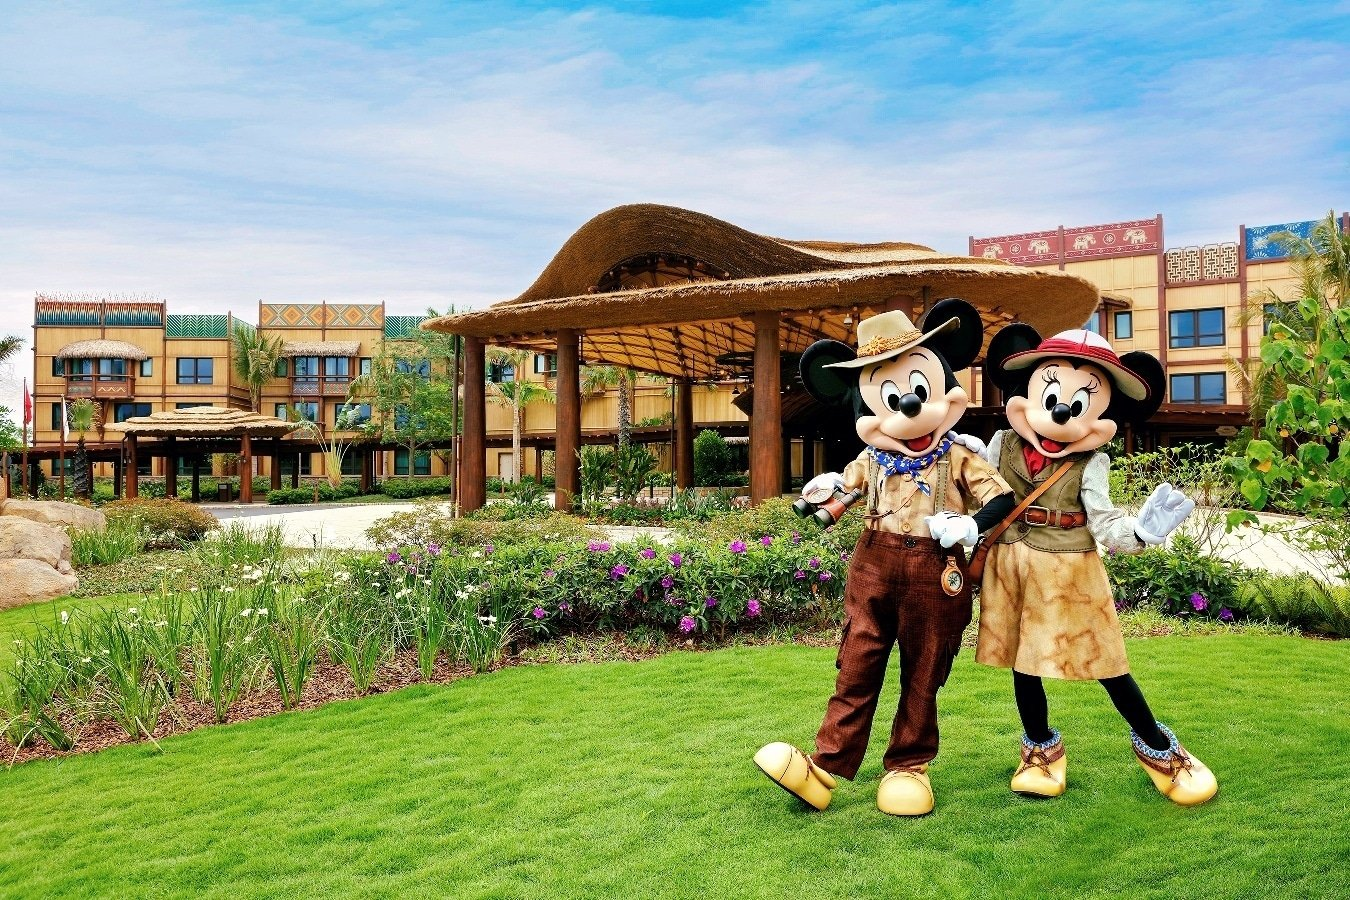 Disney Explorers Lodge is the newest Hong Kong Disneyland hotel.